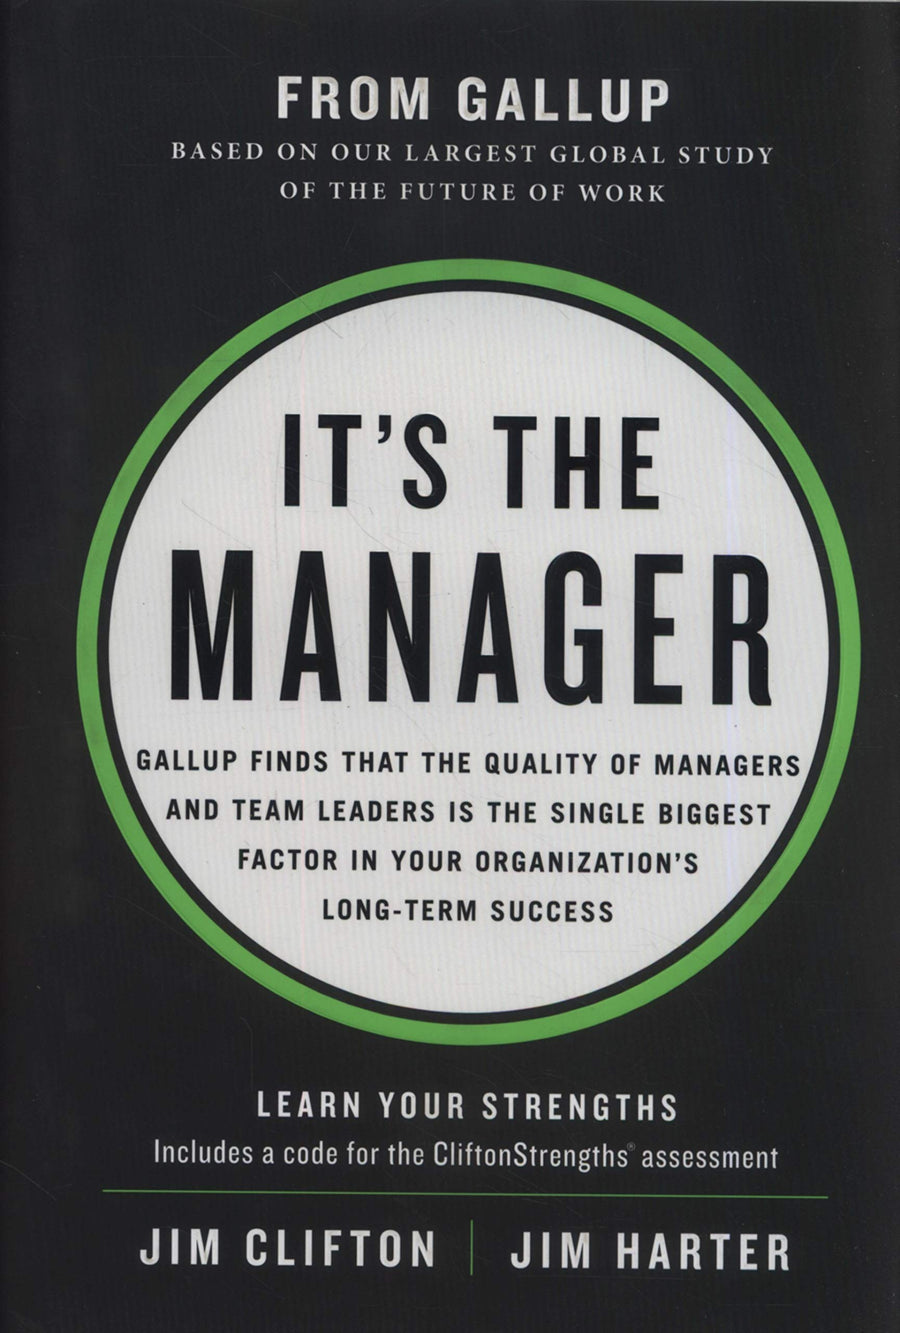 It's the Manager: Gallup finds the quality of managers and team leaders is the single biggest factor in your organization's long-term success. - Leadership Books